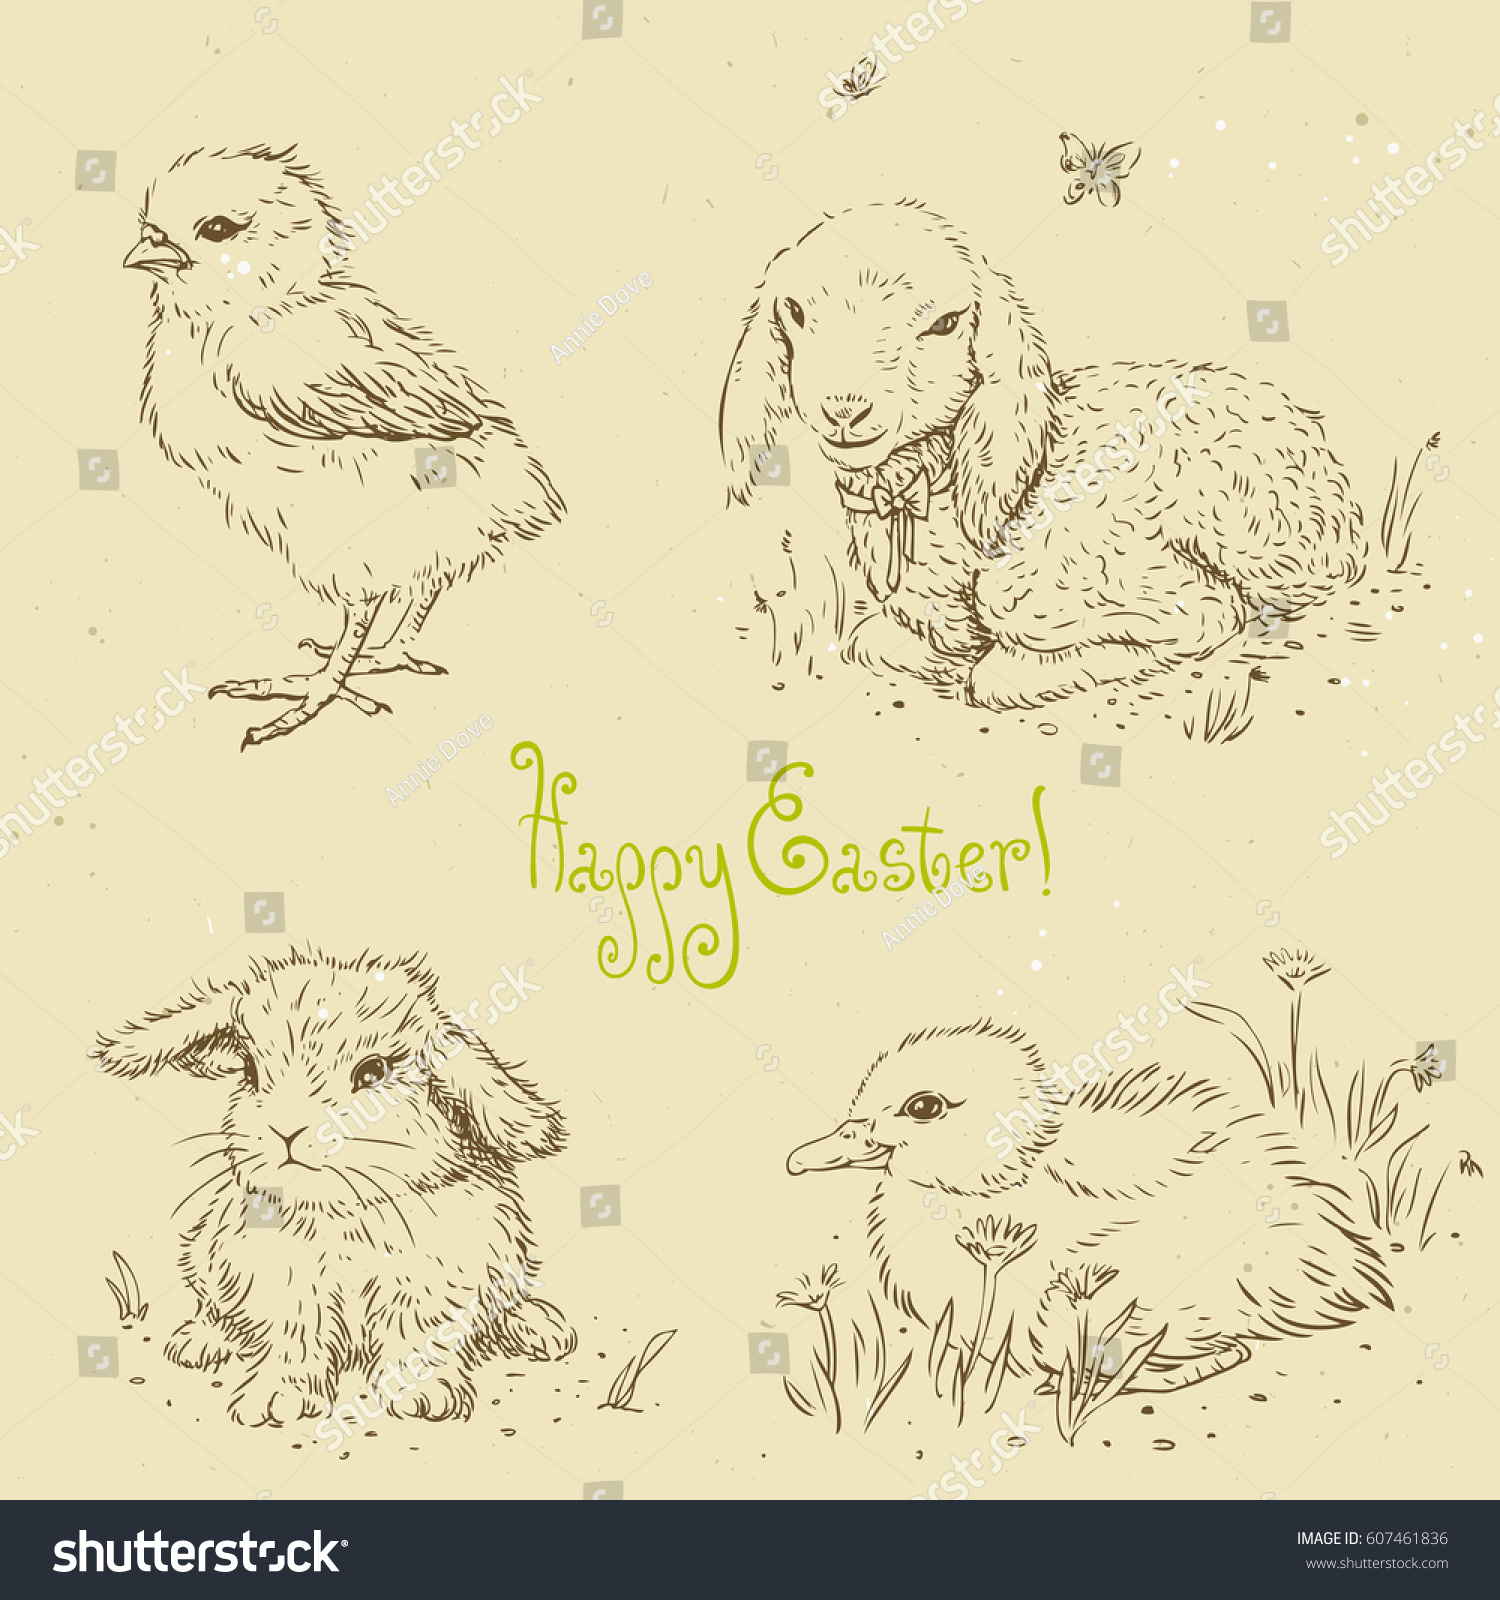 Sketches In Retro Style For Design Easter Chick